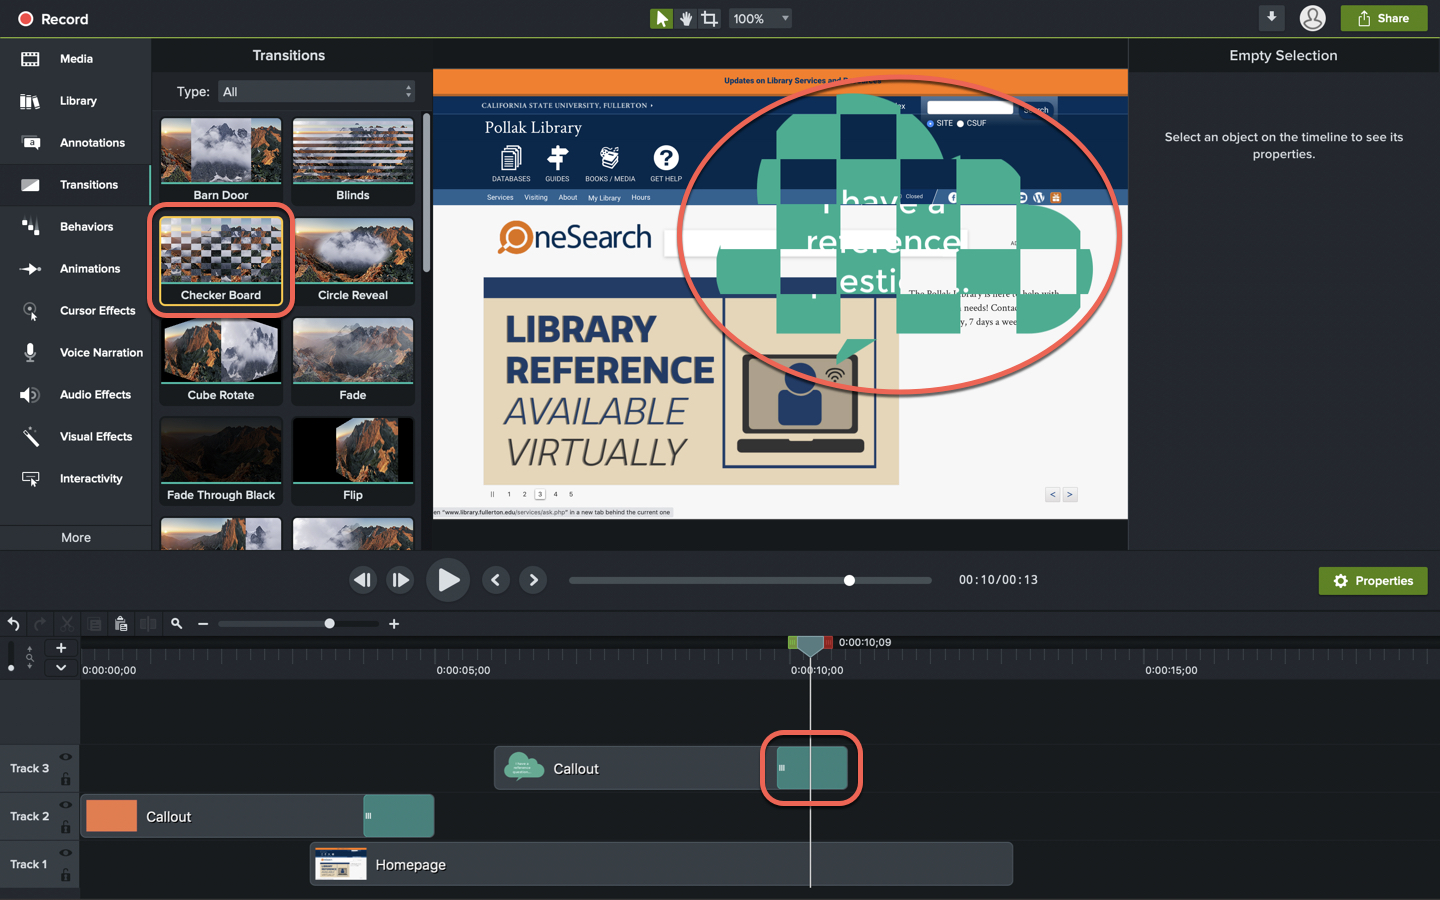 Screenshot of Camtasia interface with the transitions section highlighted